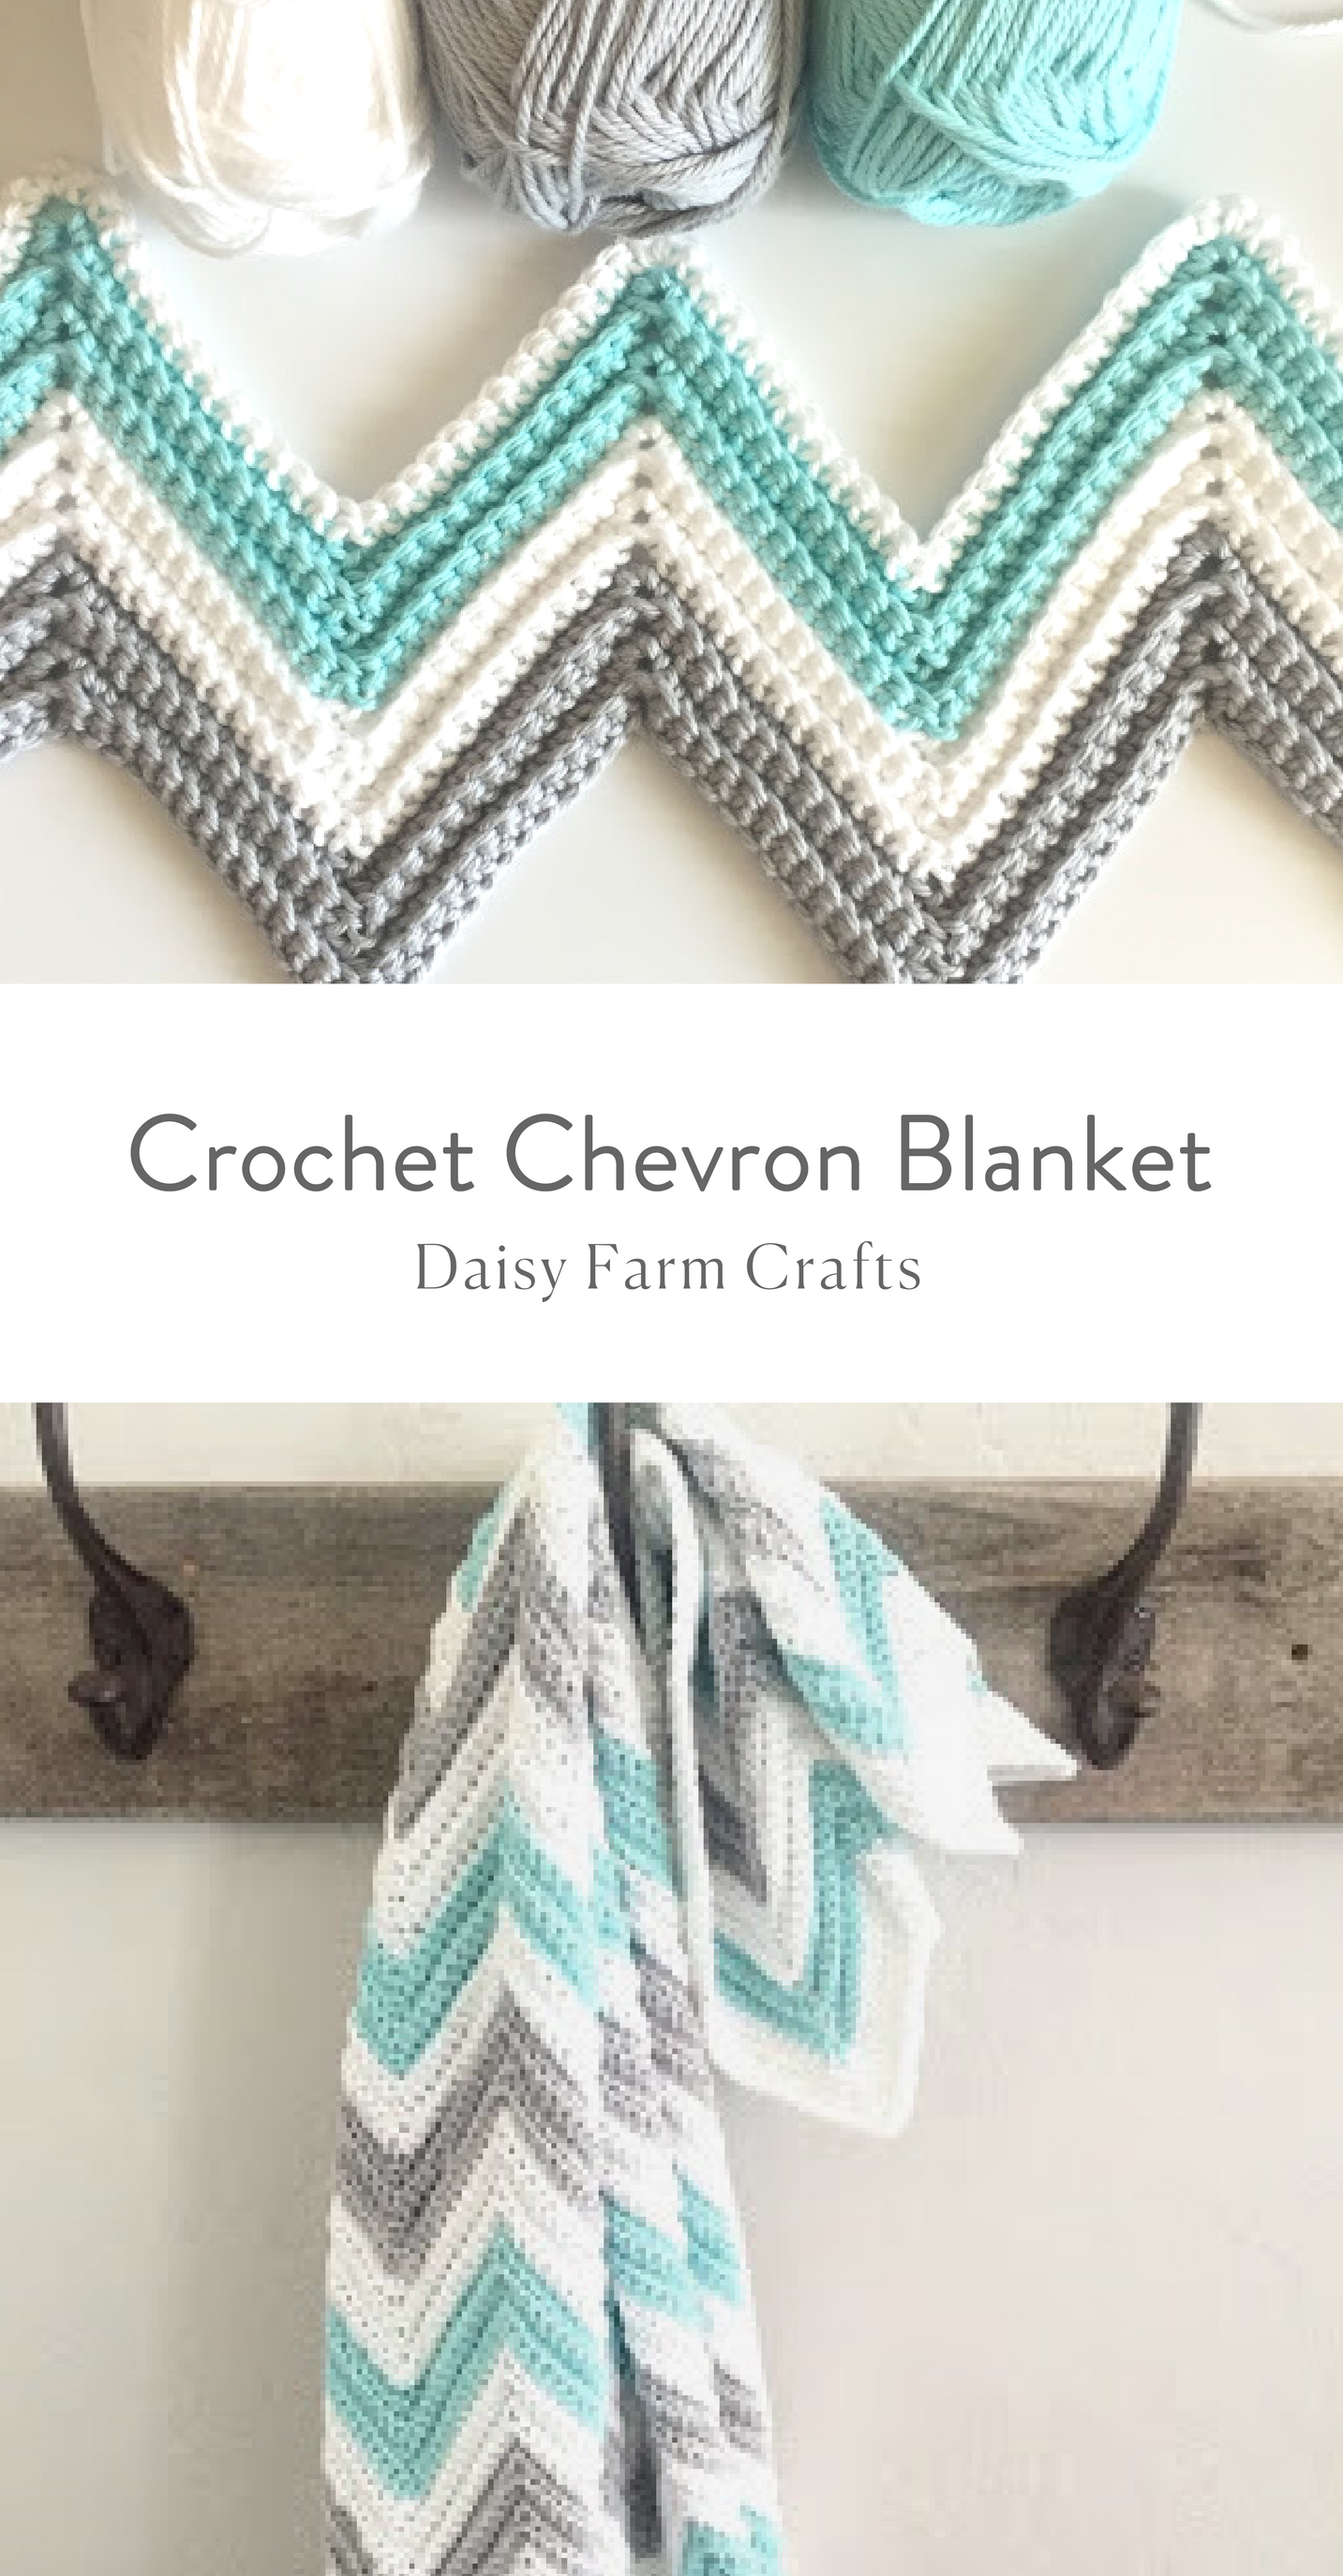 Free Pattern - Crochet Chevron Blanket | Moms board | Pinterest ...